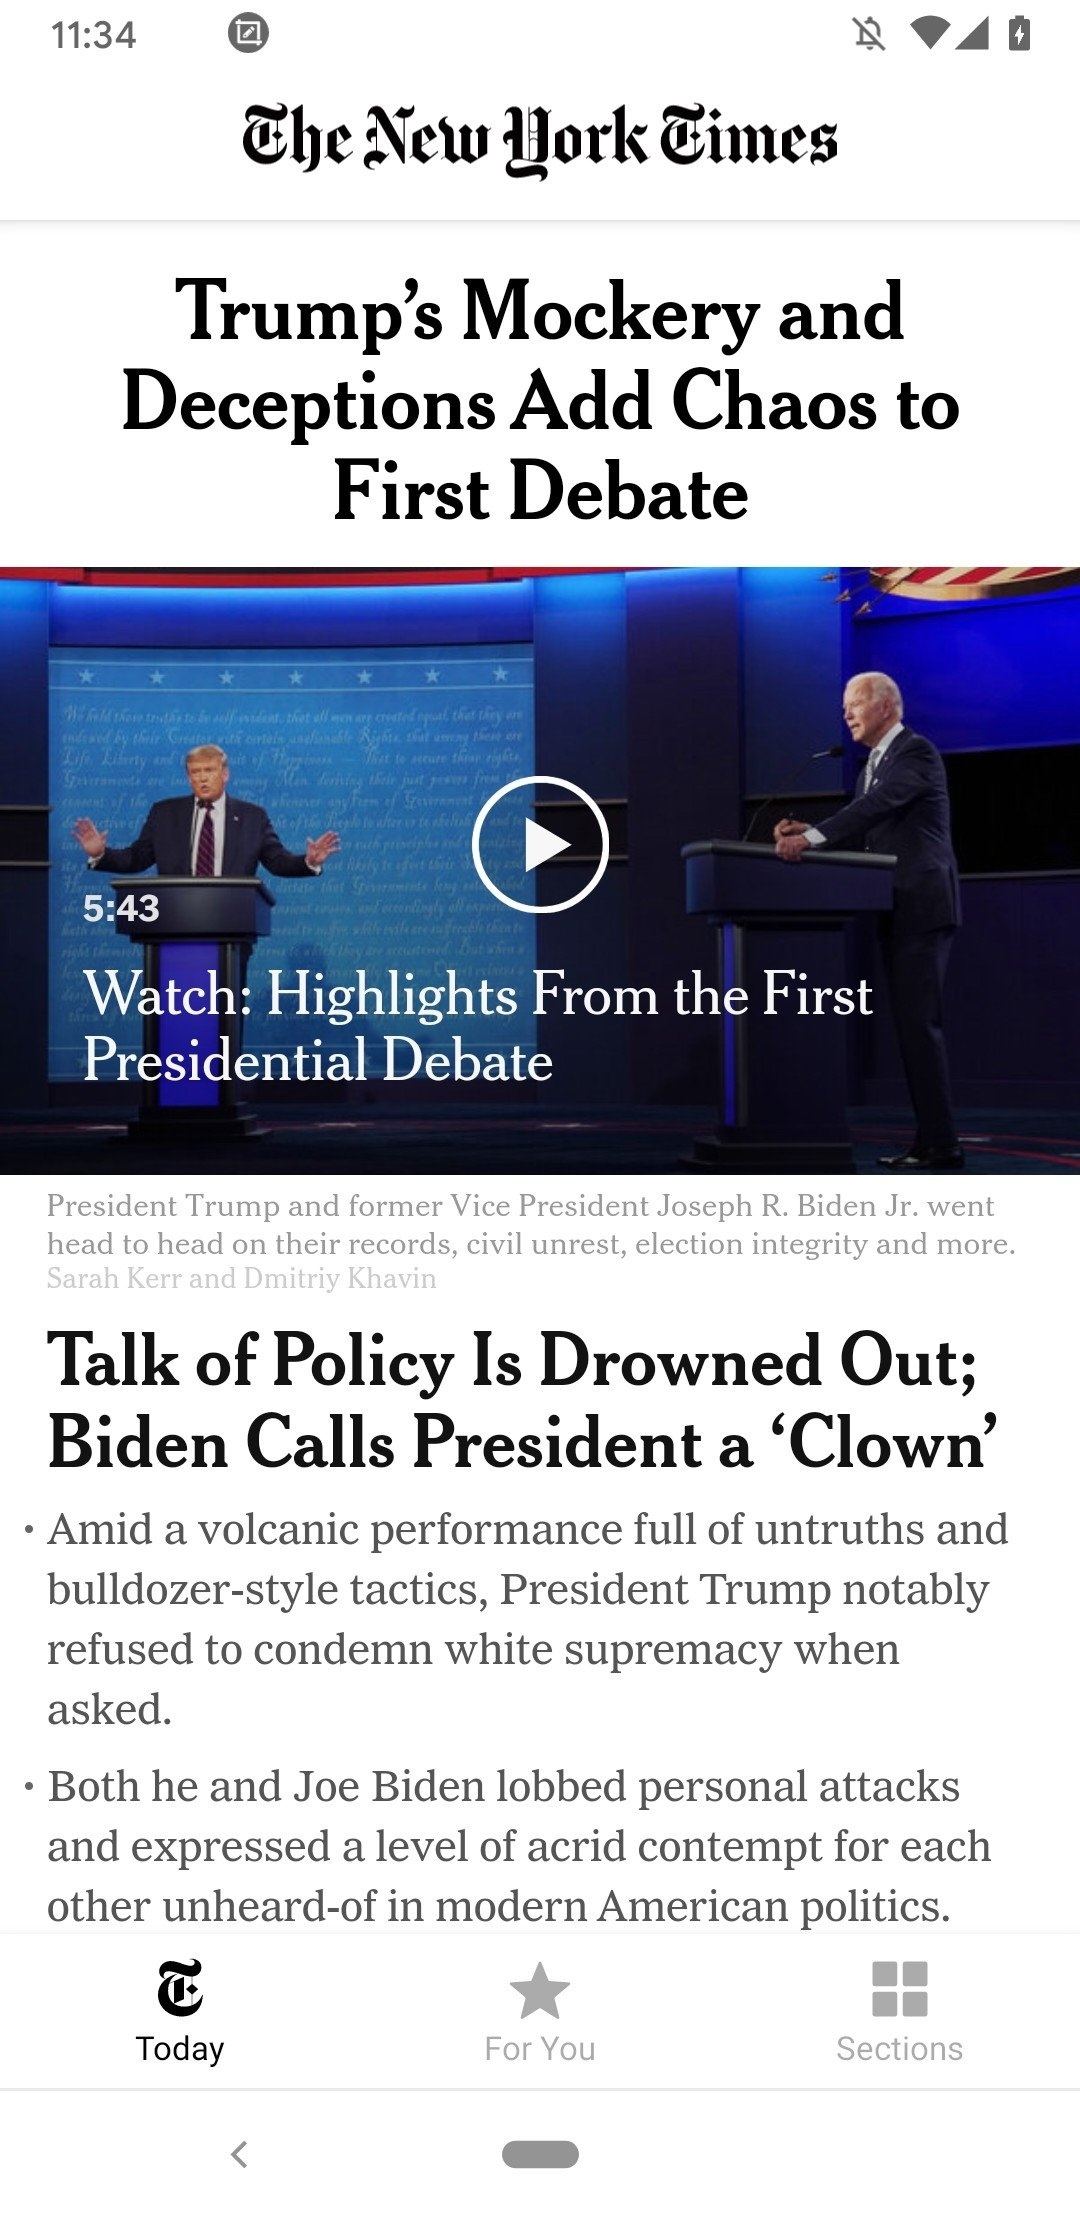 NYTimes Android image 5